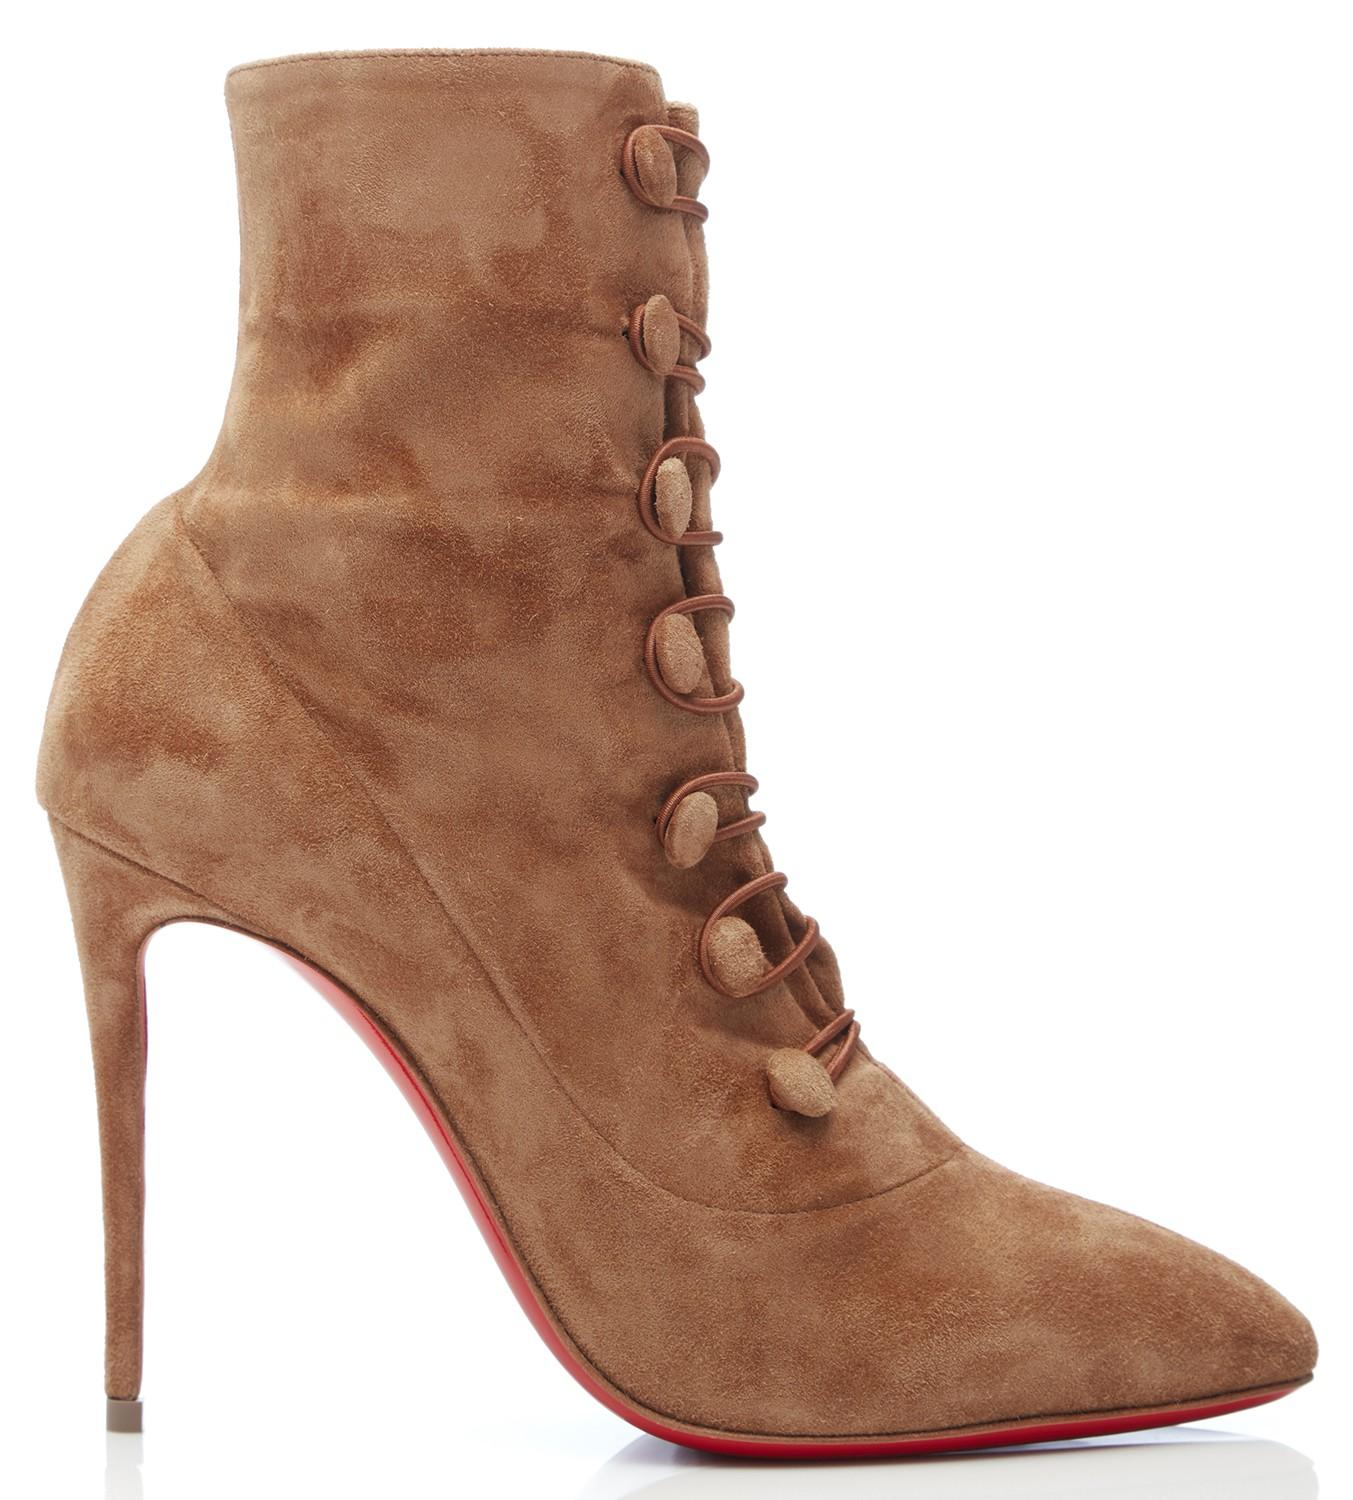 9d046ad674f5 Lyst - Christian Louboutin French Tutu Brown Suede Ankle Boots in Brown